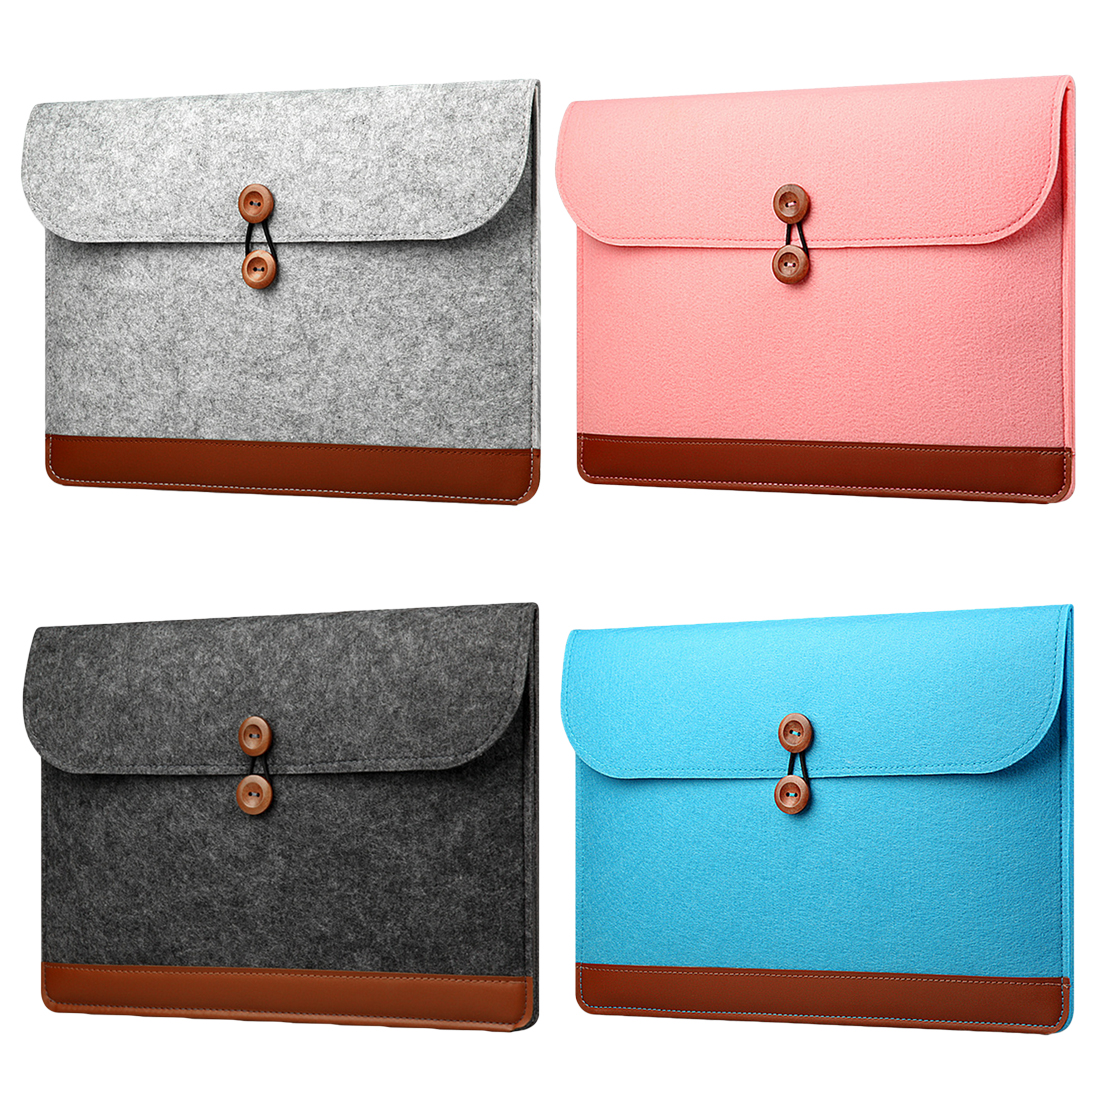 Creative New Fashion Soft Sleeve Bag Case For Apple Macbook Air Pro Retina 11 12 13 15 Laptop Anti-scratch Felt Cover